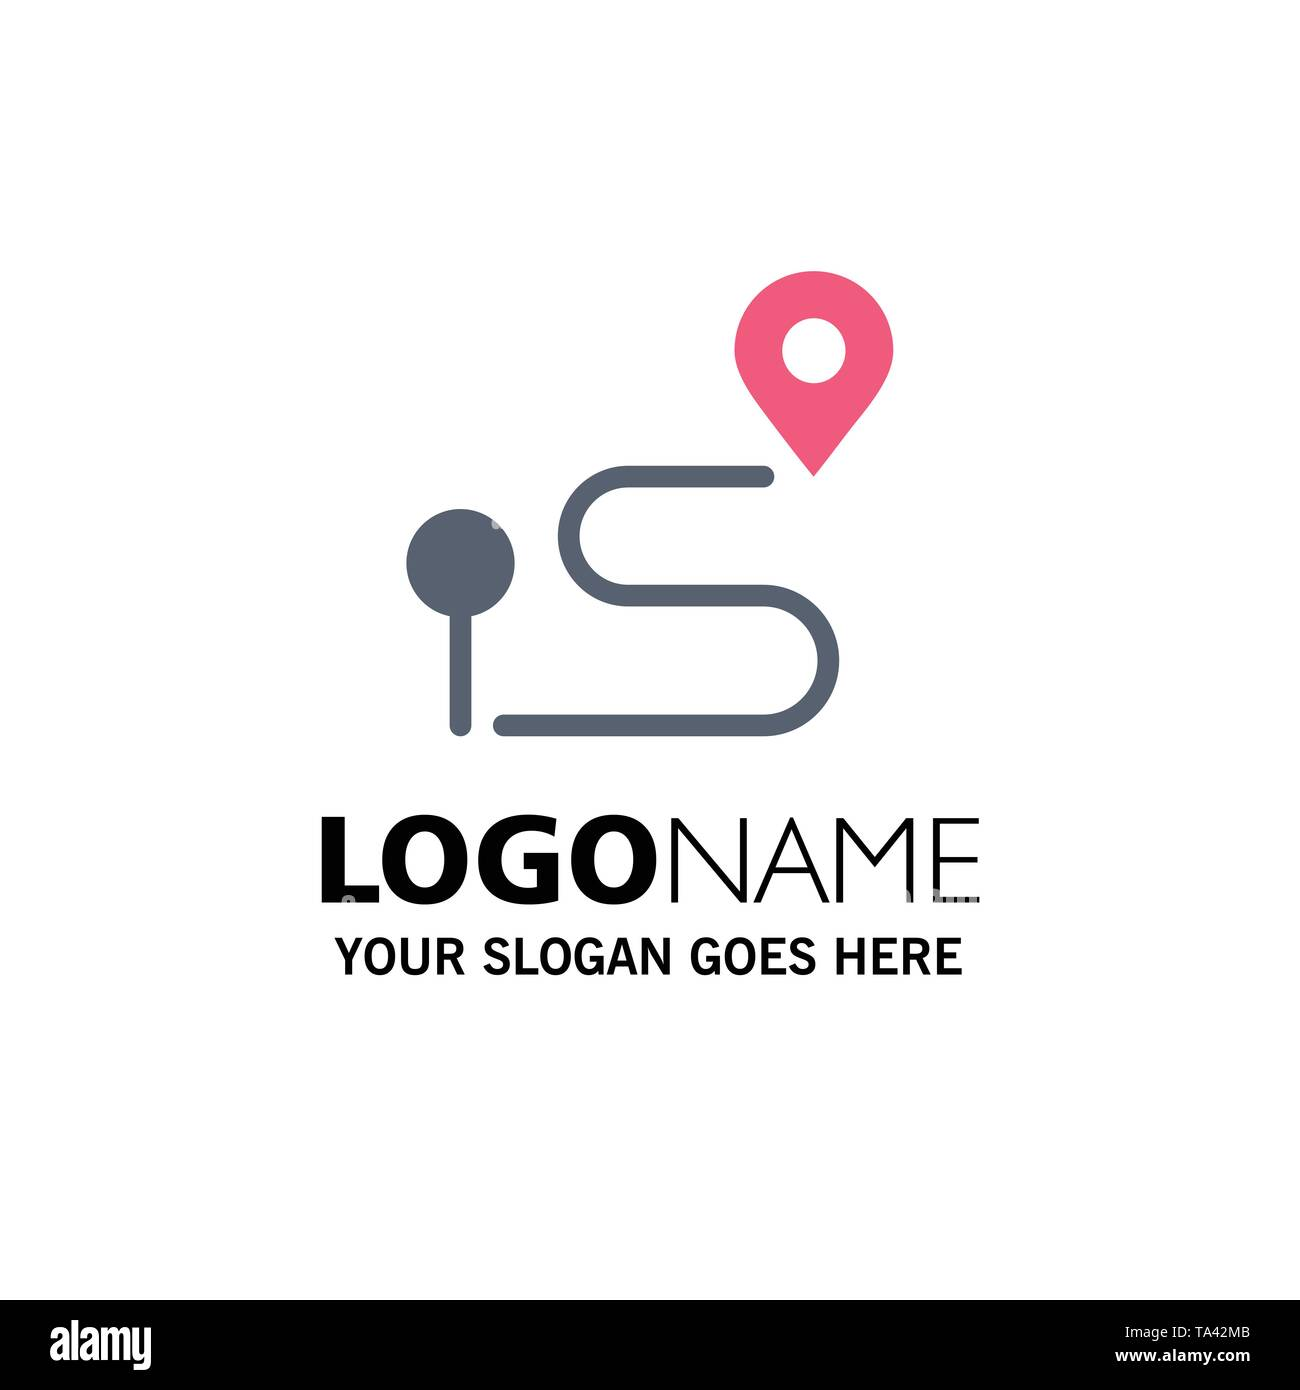 Location, Map, Navigation, Pin Business Logo Template. Flat Color - Stock Image